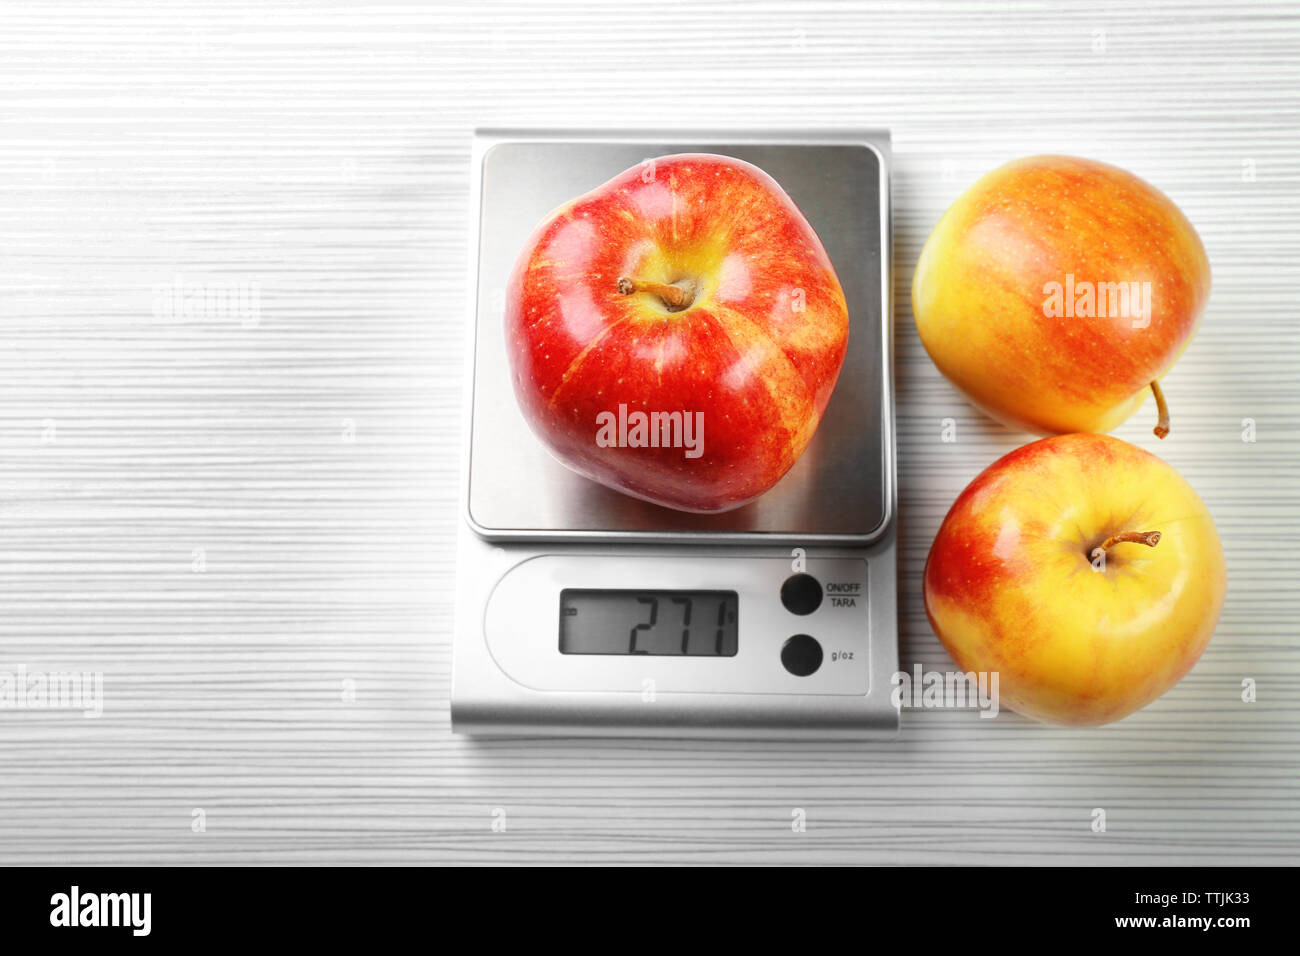 Apple with digital kitchen scales on wooden background - Stock Image